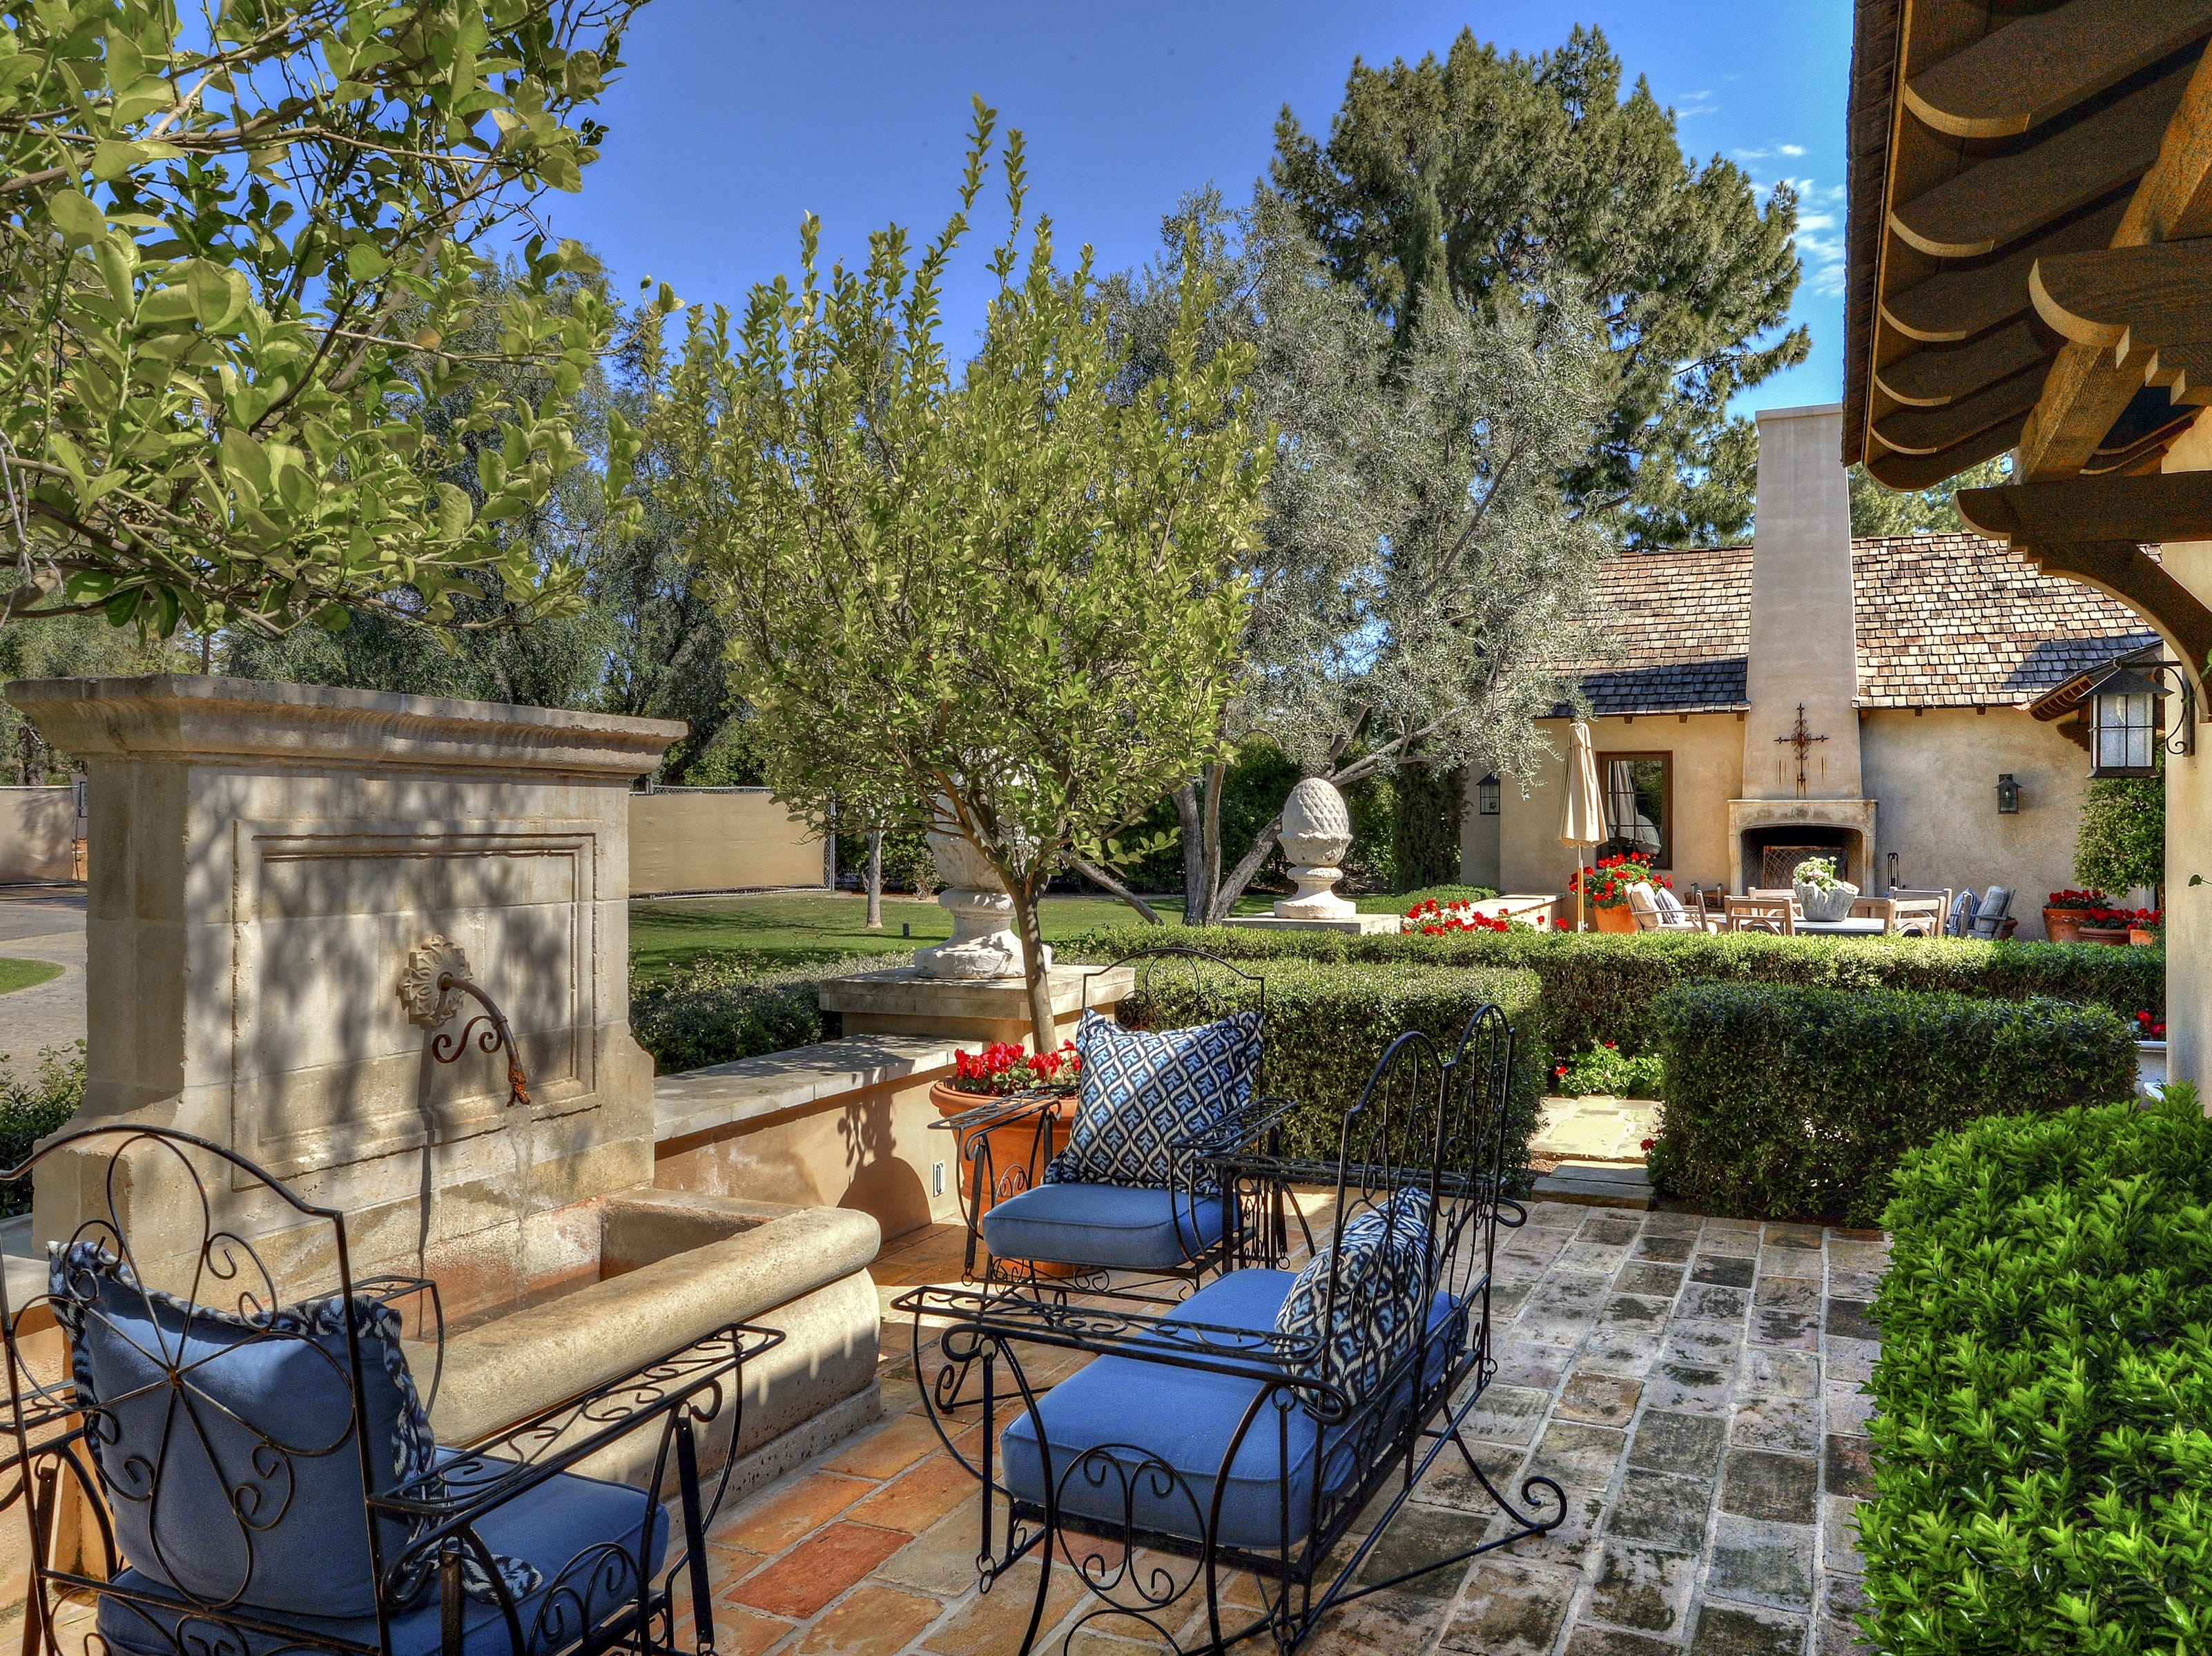 The $3.3M Paradise Valley home purchased by Bill and Susan Roach has a brick paved front courtyard.